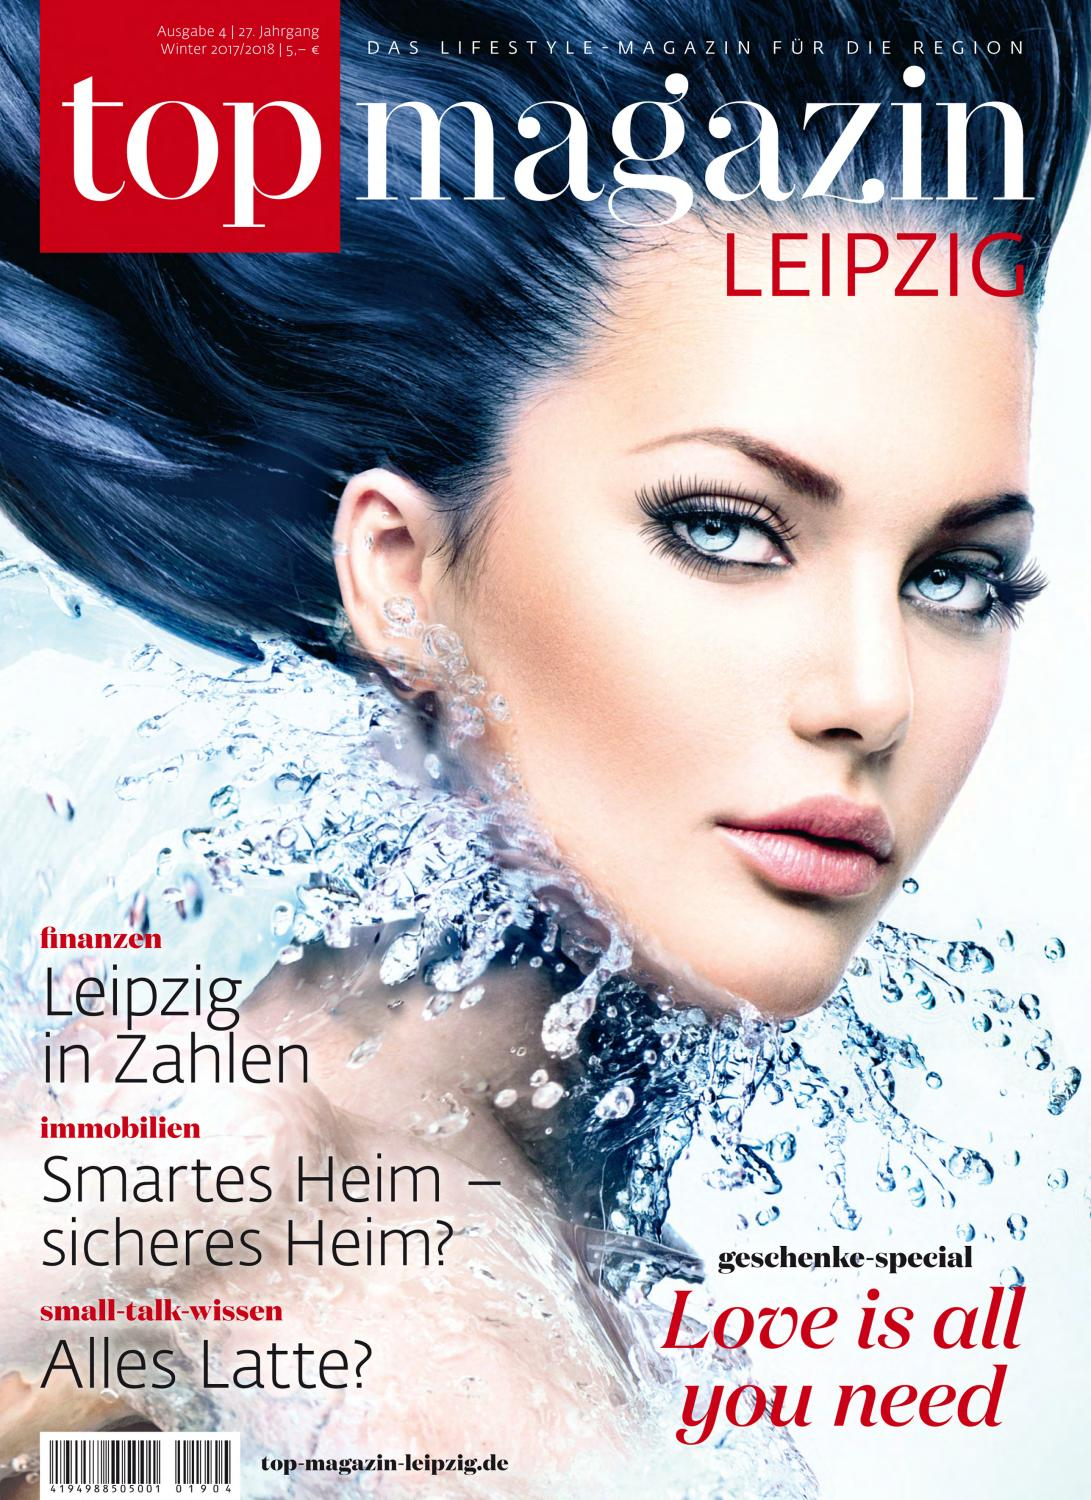 Top Magazin Leipzig Winter 2017 by Top Magazin - issuu